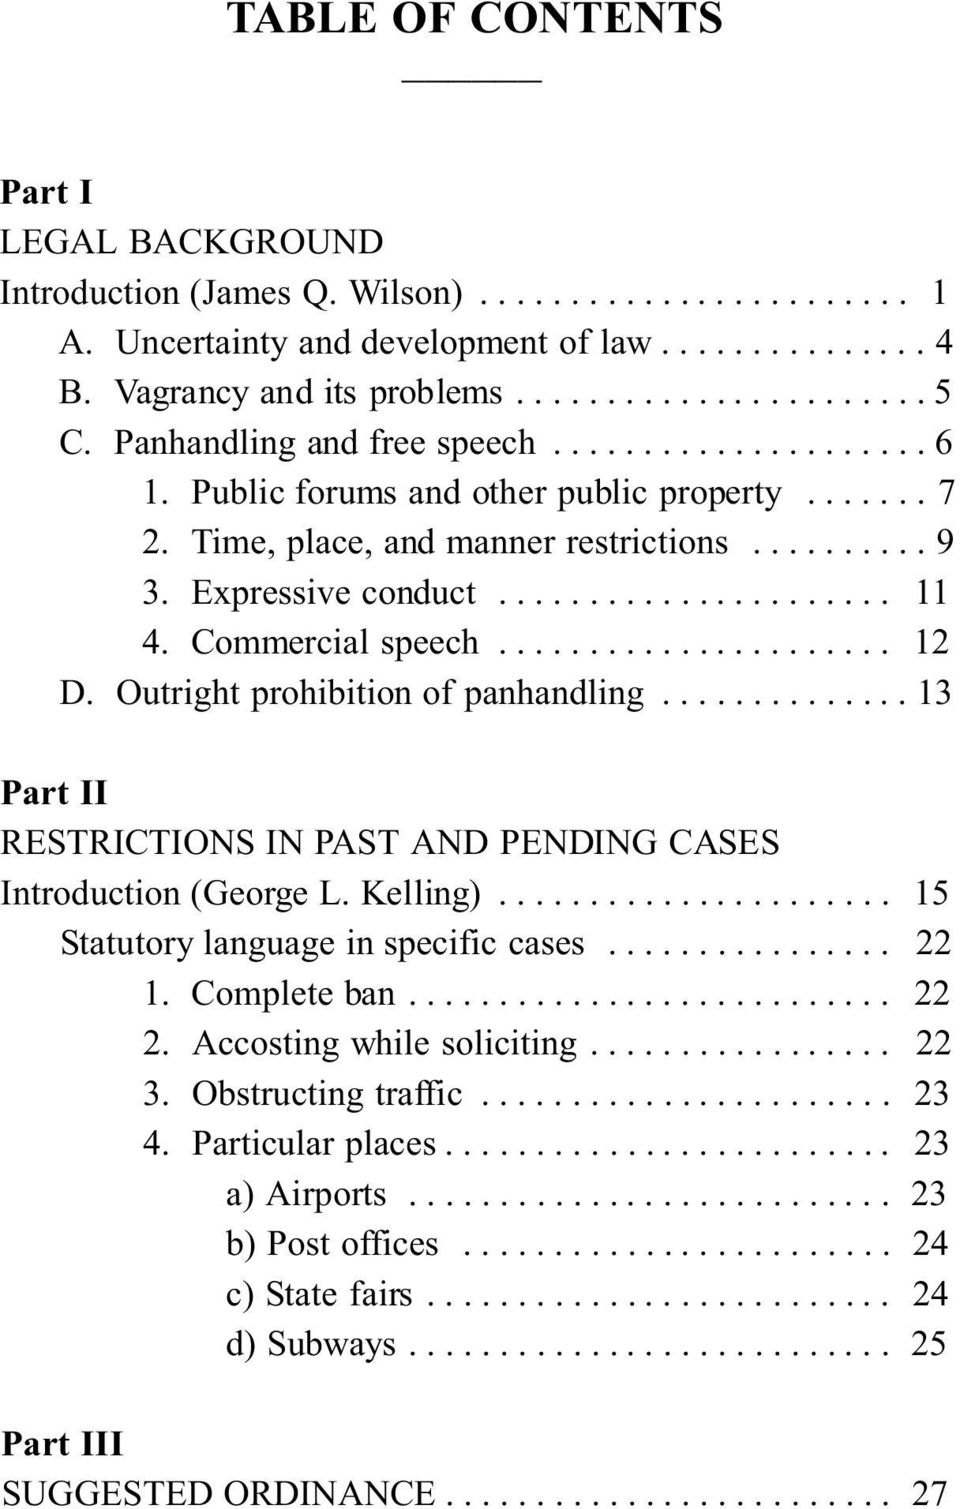 Outright prohibition of panhandling...13 Part II RESTRICTIONS IN PAST AND PENDING CASES Introduction (George L. Kelling)... 15 Statutory language in specific cases... 22 1.